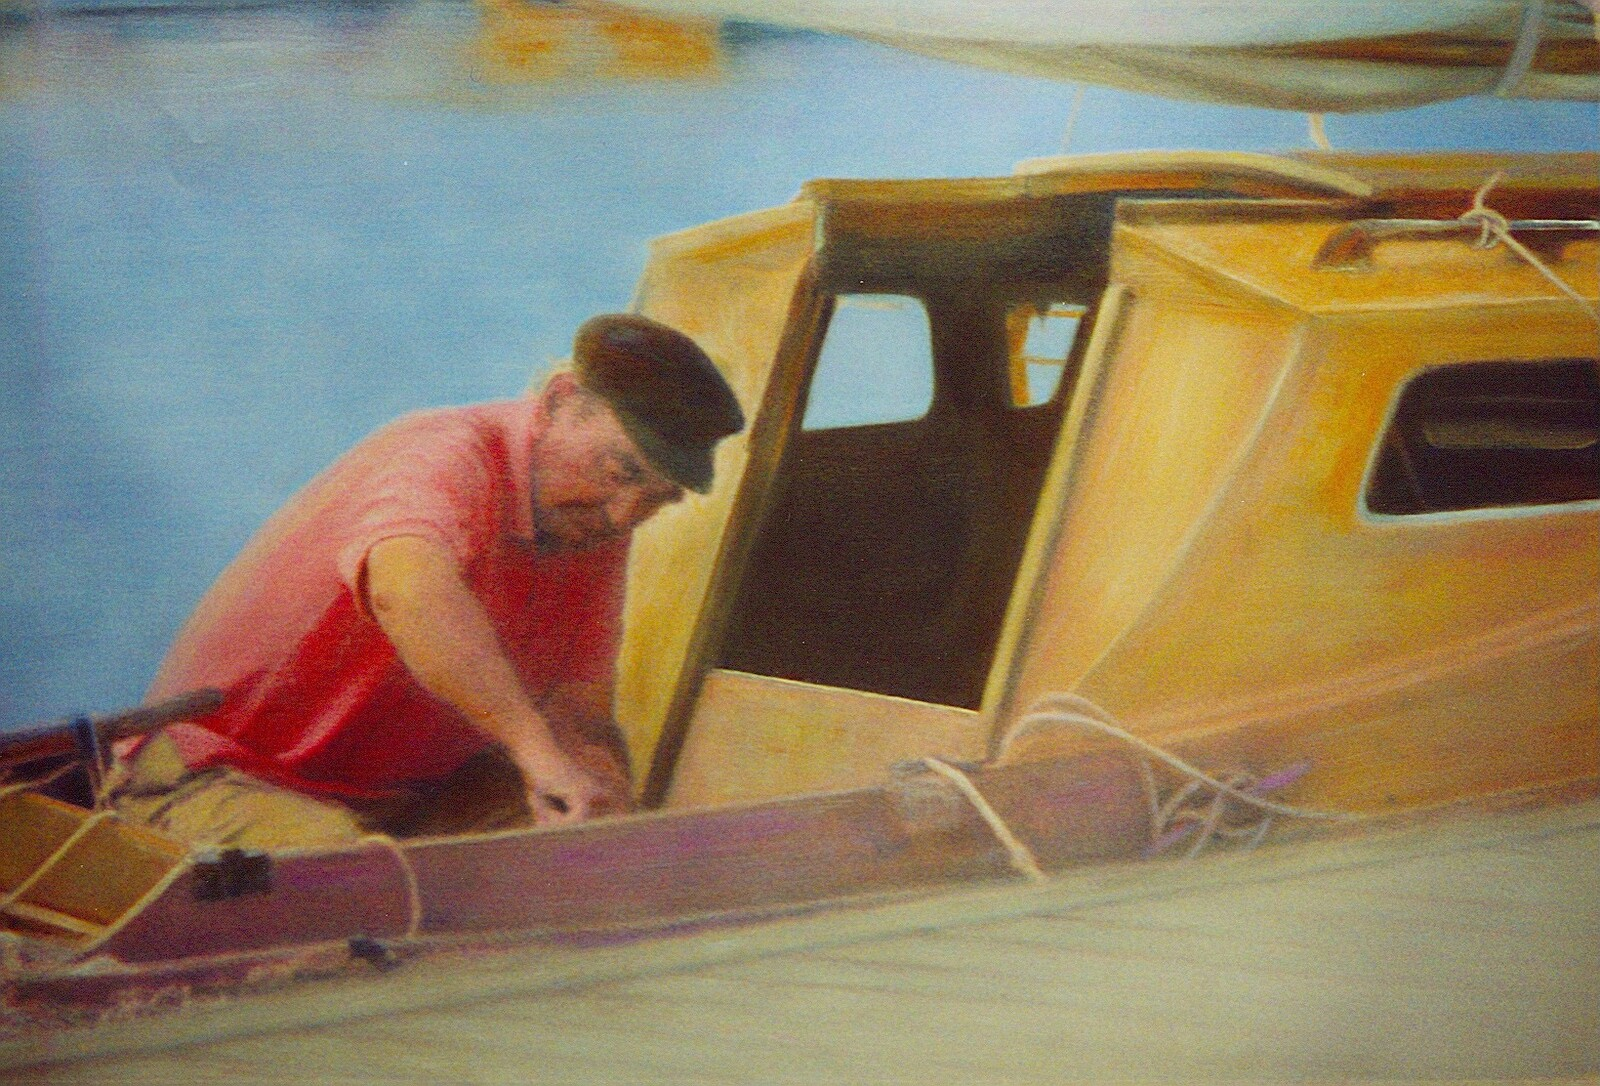 Fisherman in Boat, St Tropez